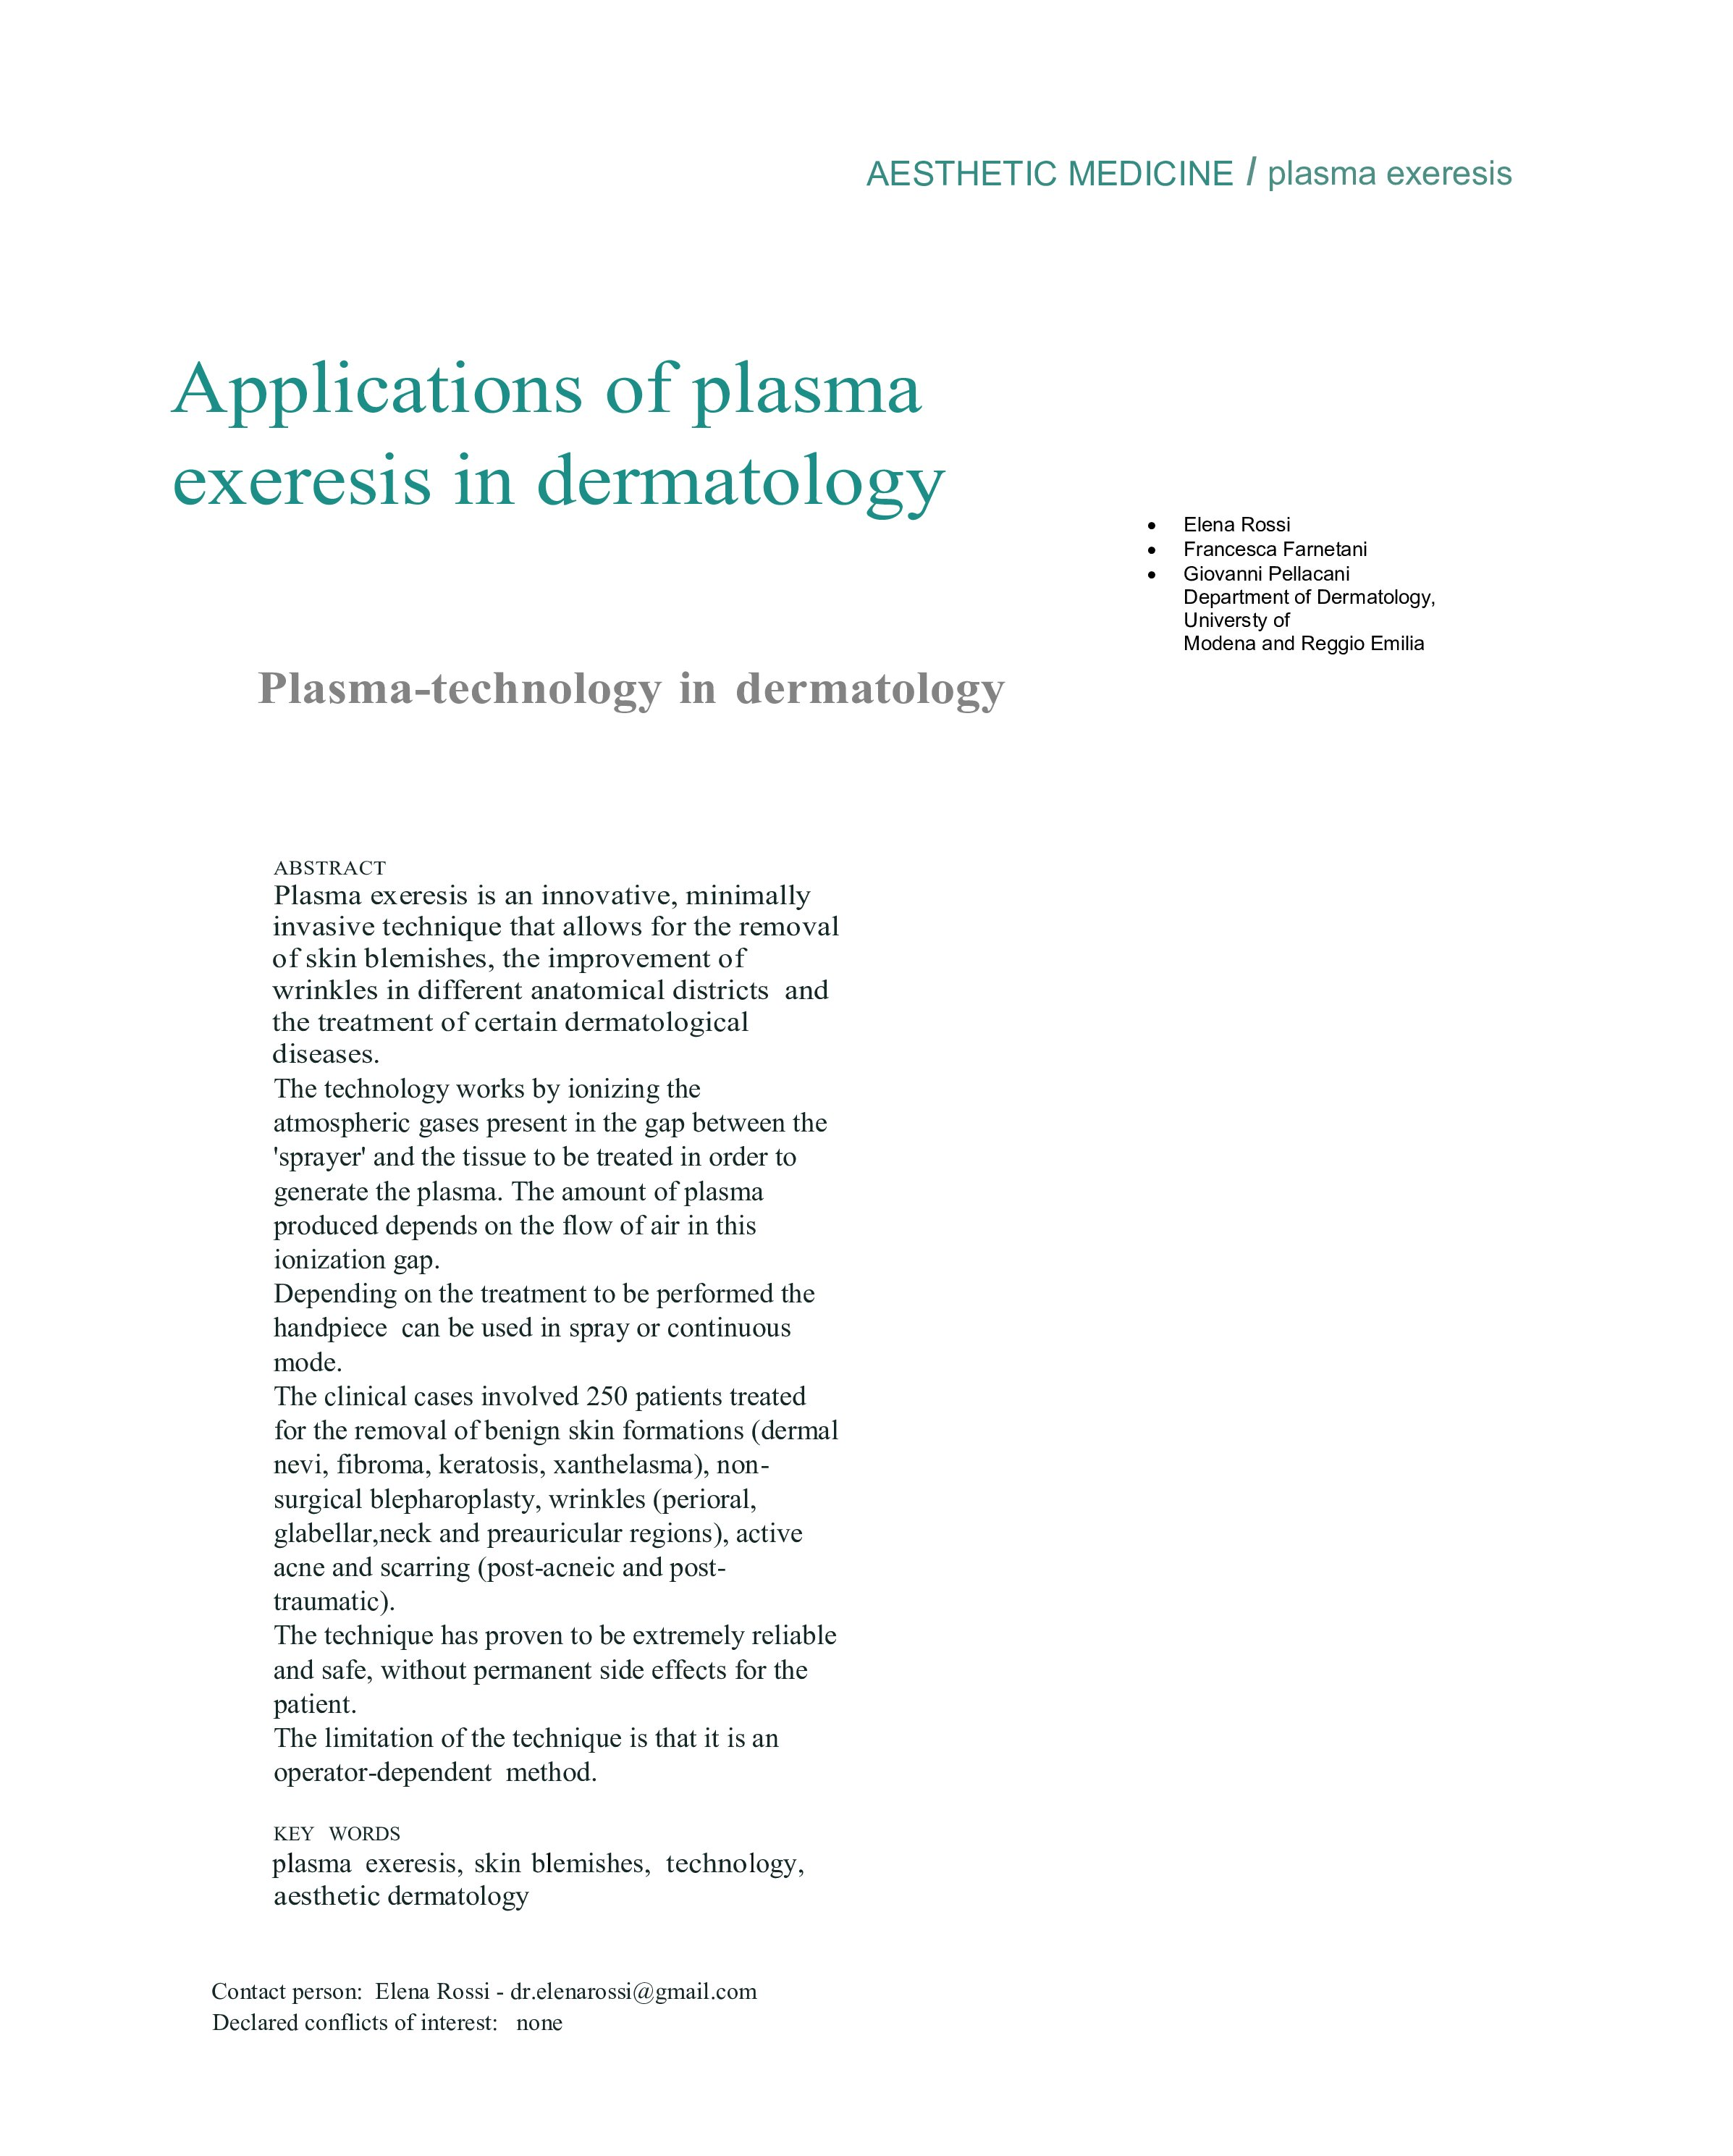 Applications of plasma exeresis in dermatology